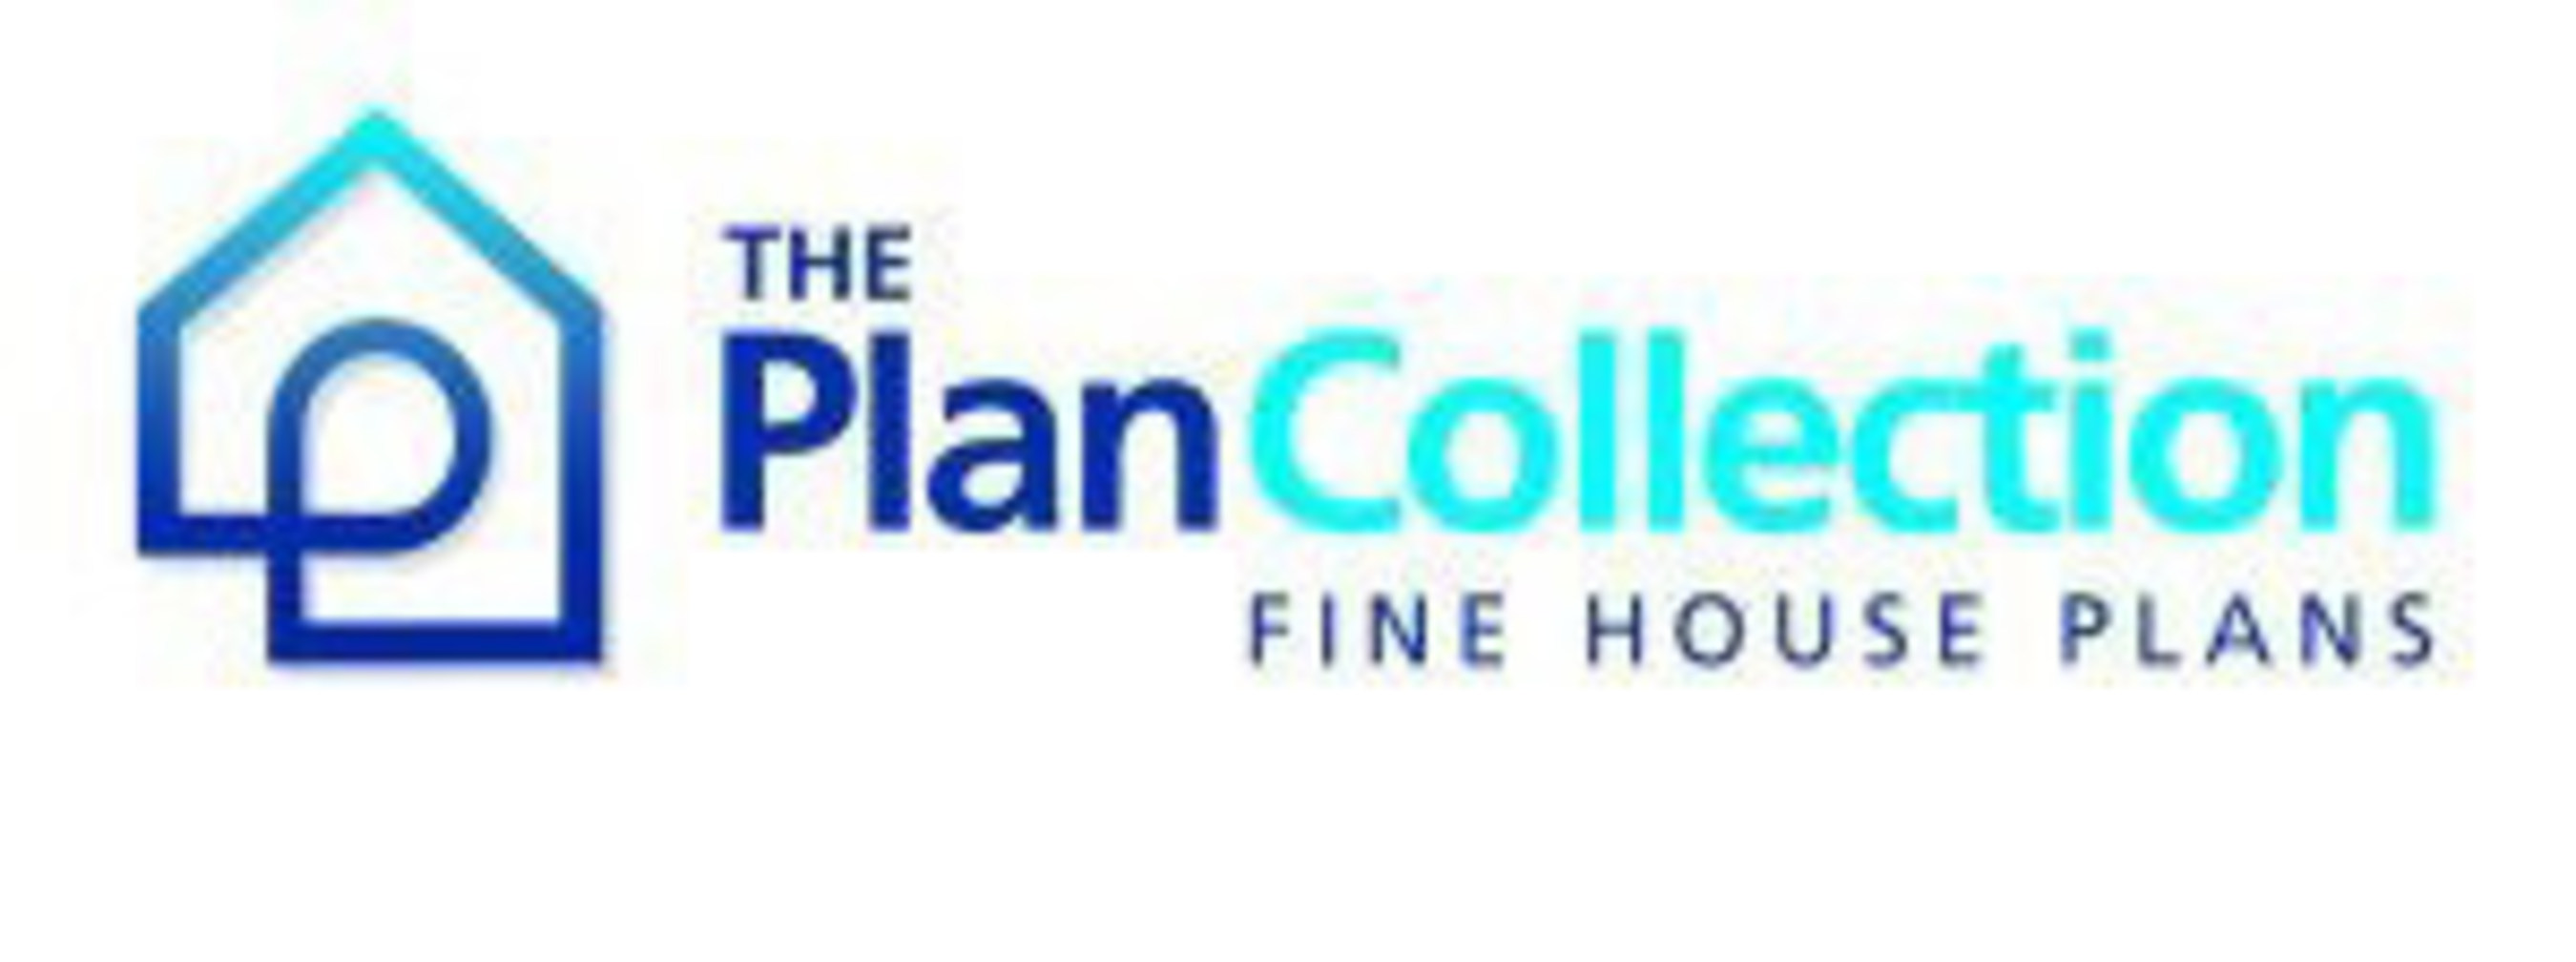 The Plan Collection Shares 4 Ways to Prepare Your Home for Back to School